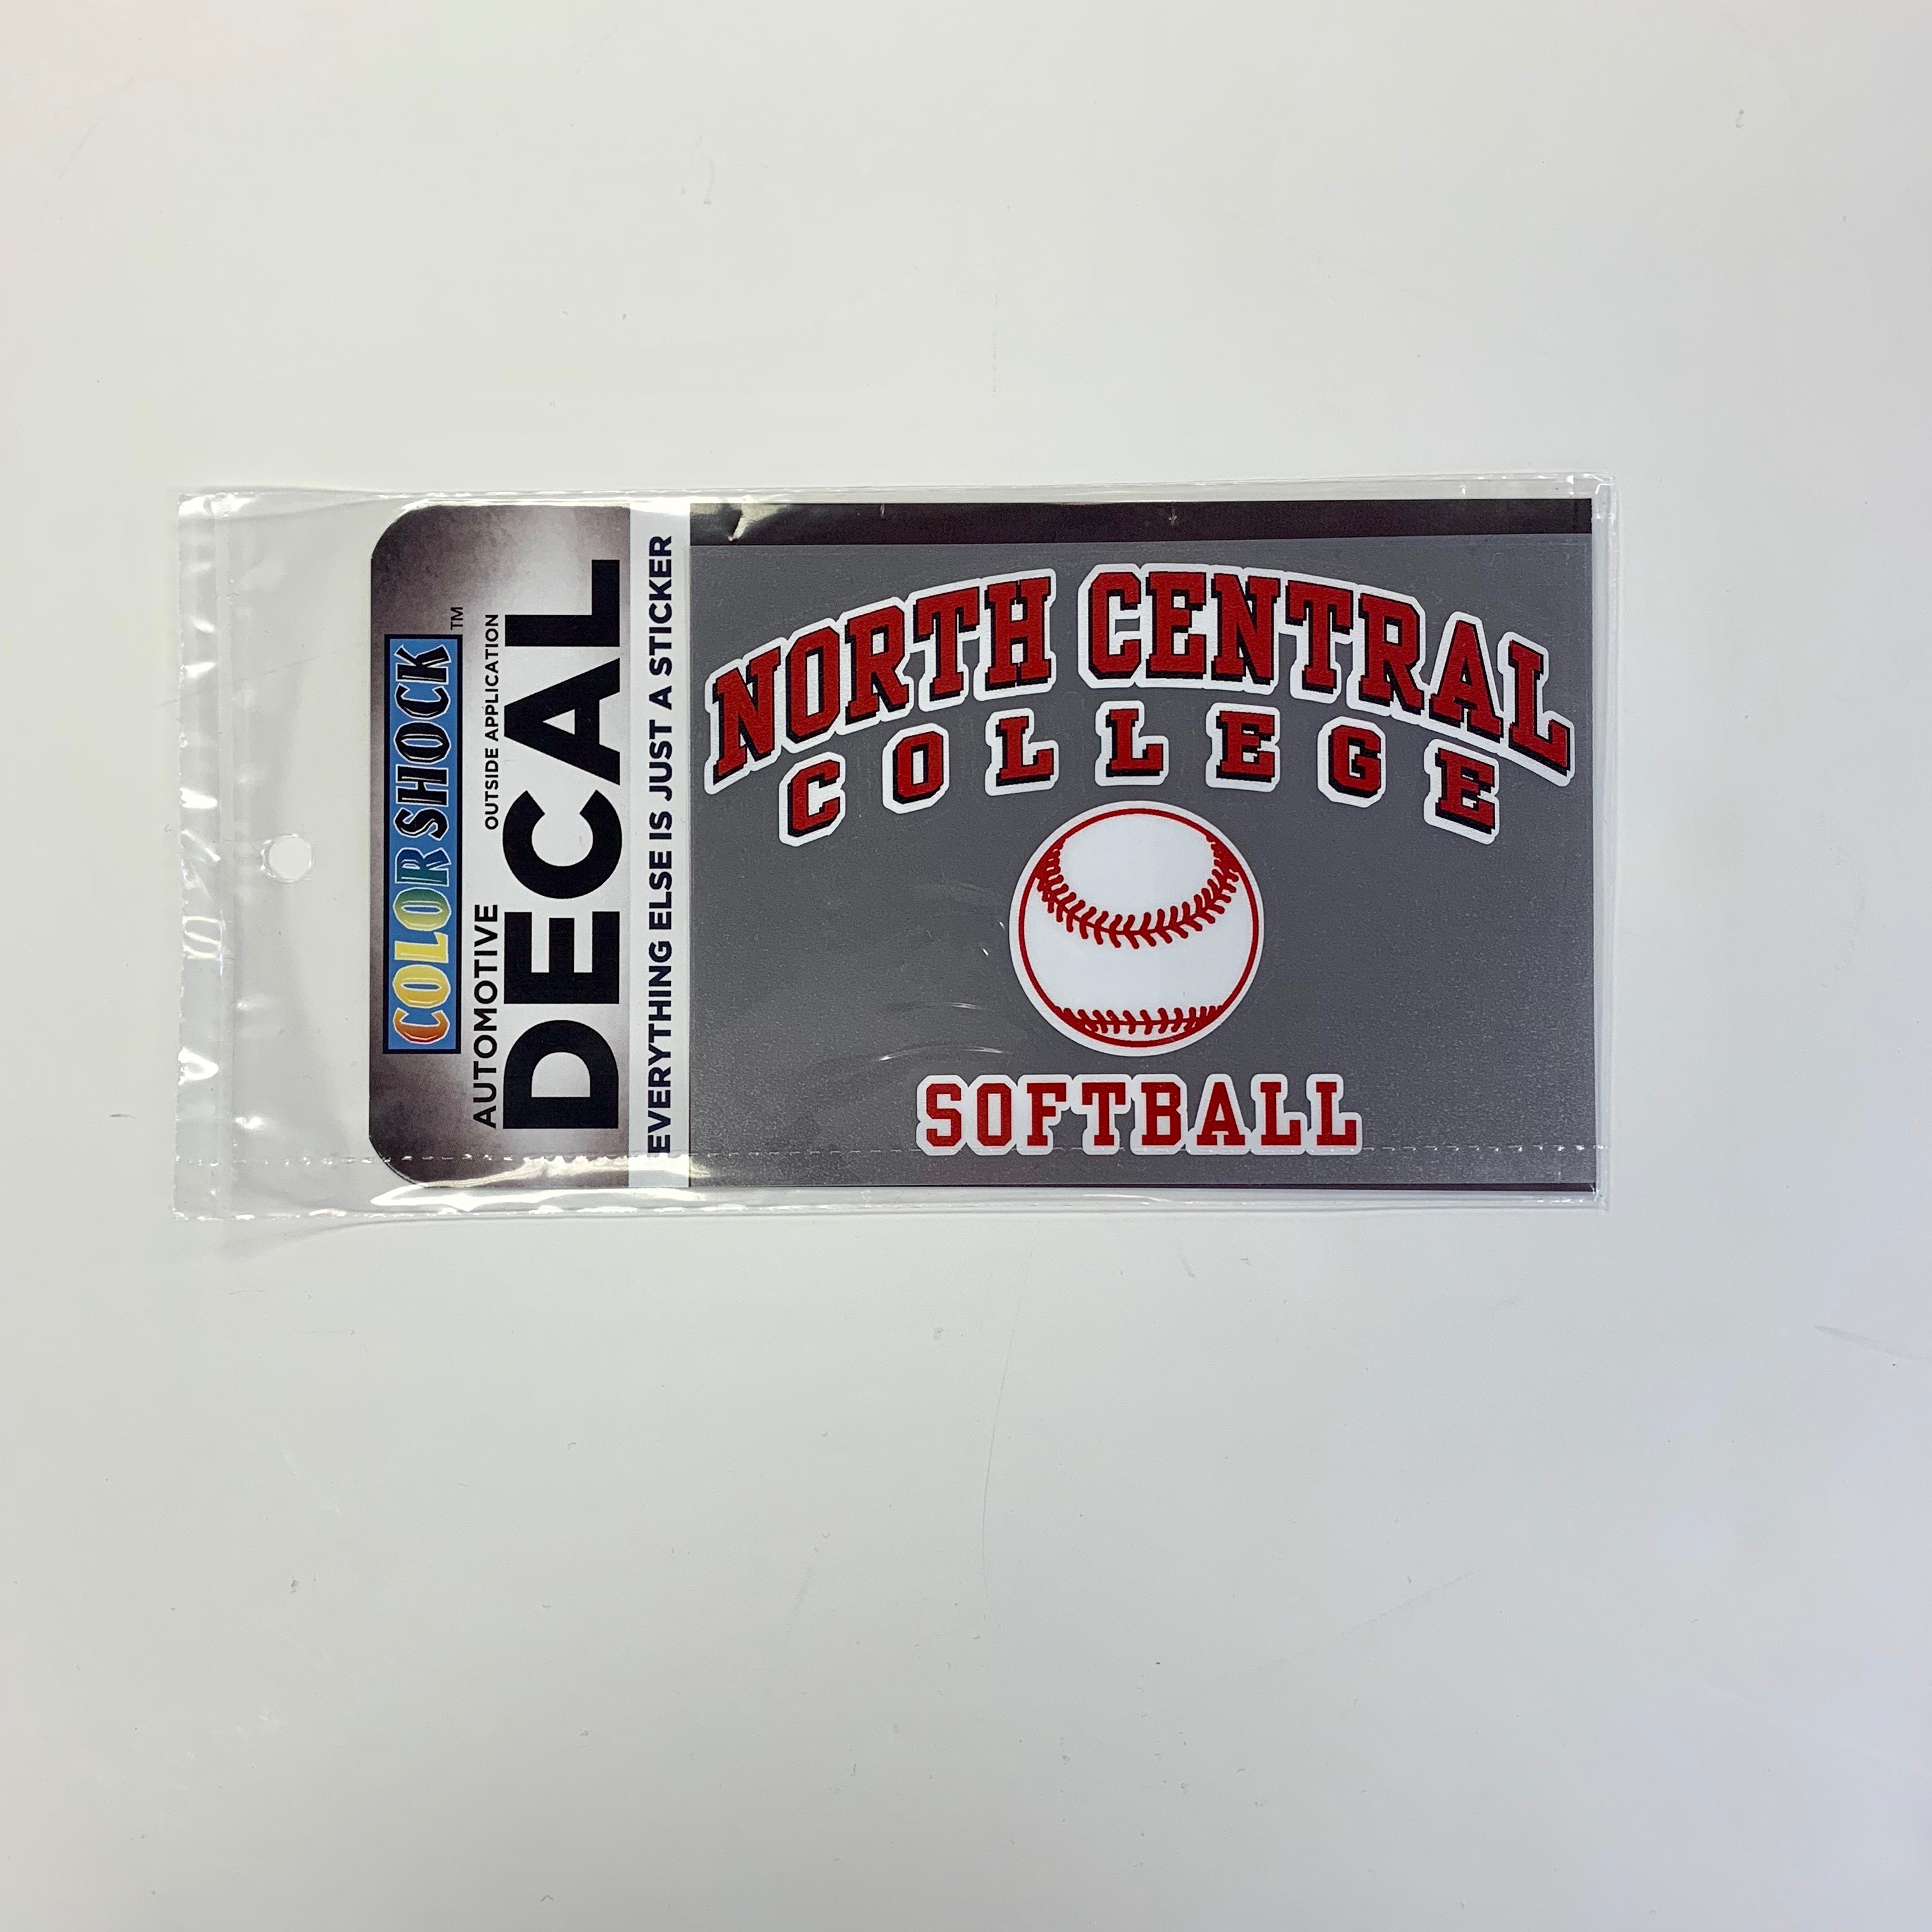 Image for the Softball Decal (ColorShock) product